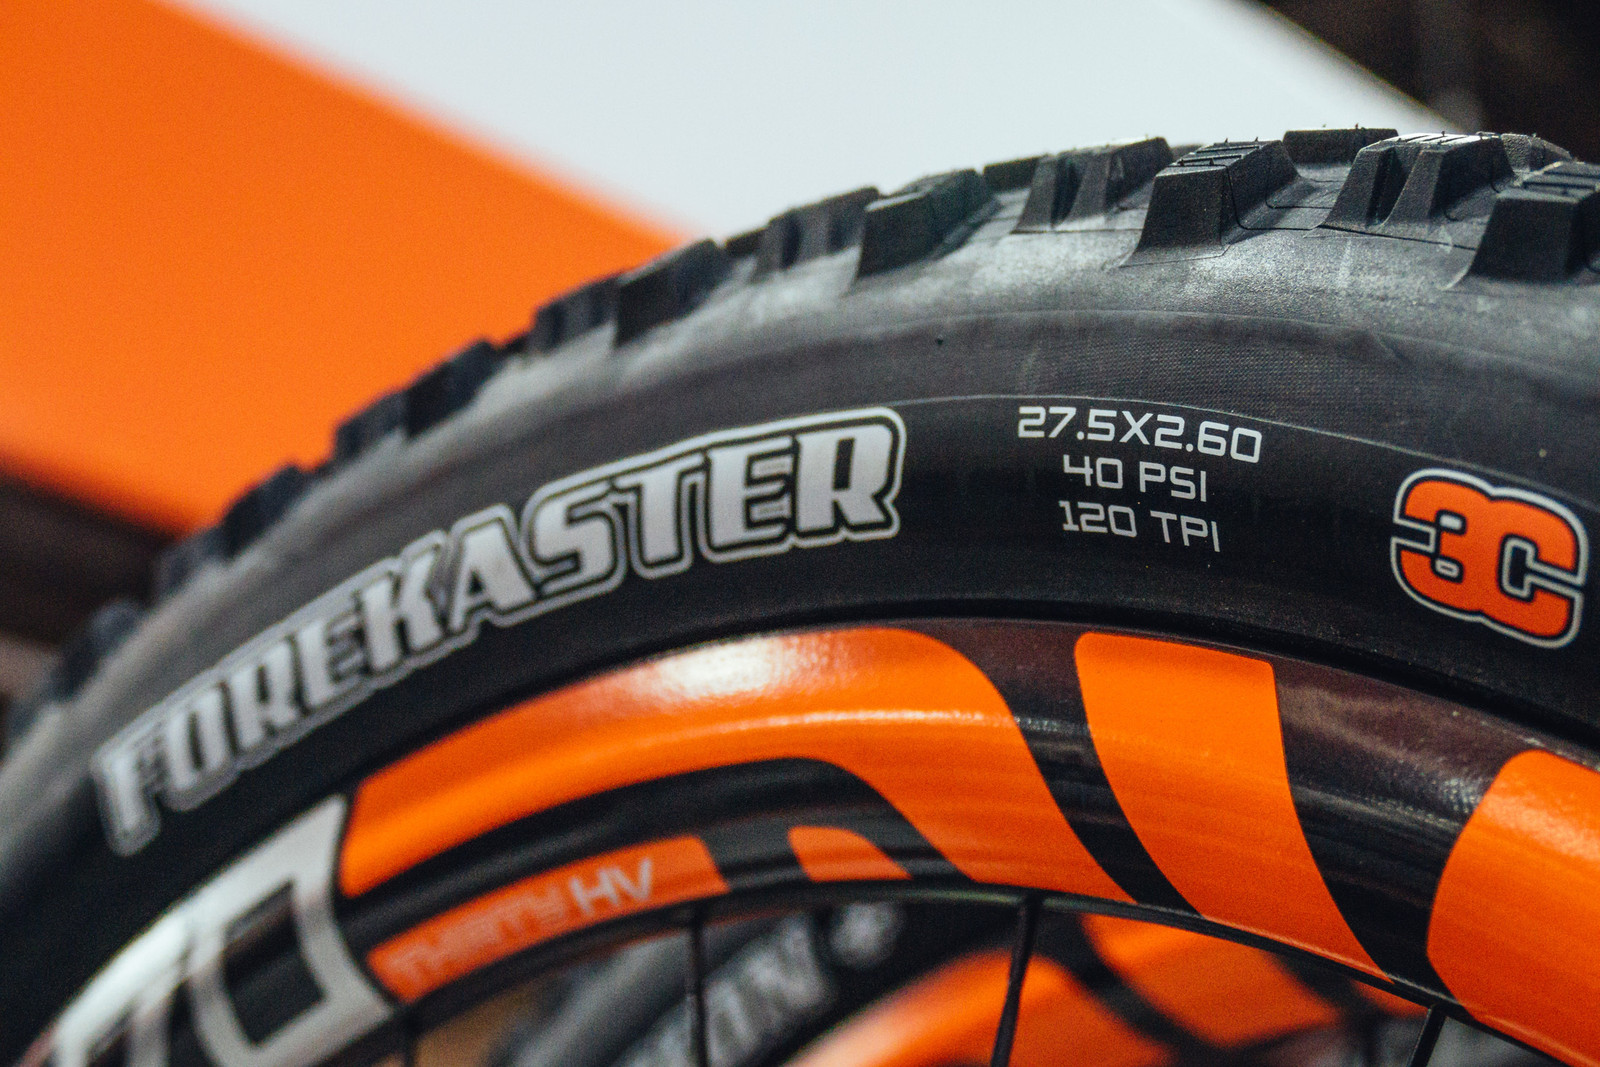 2.6-inch Maxxis Forecaster Tire - INTERBIKE - 2017 Mountain Bike Components - Mountain Biking Pictures - Vital MTB